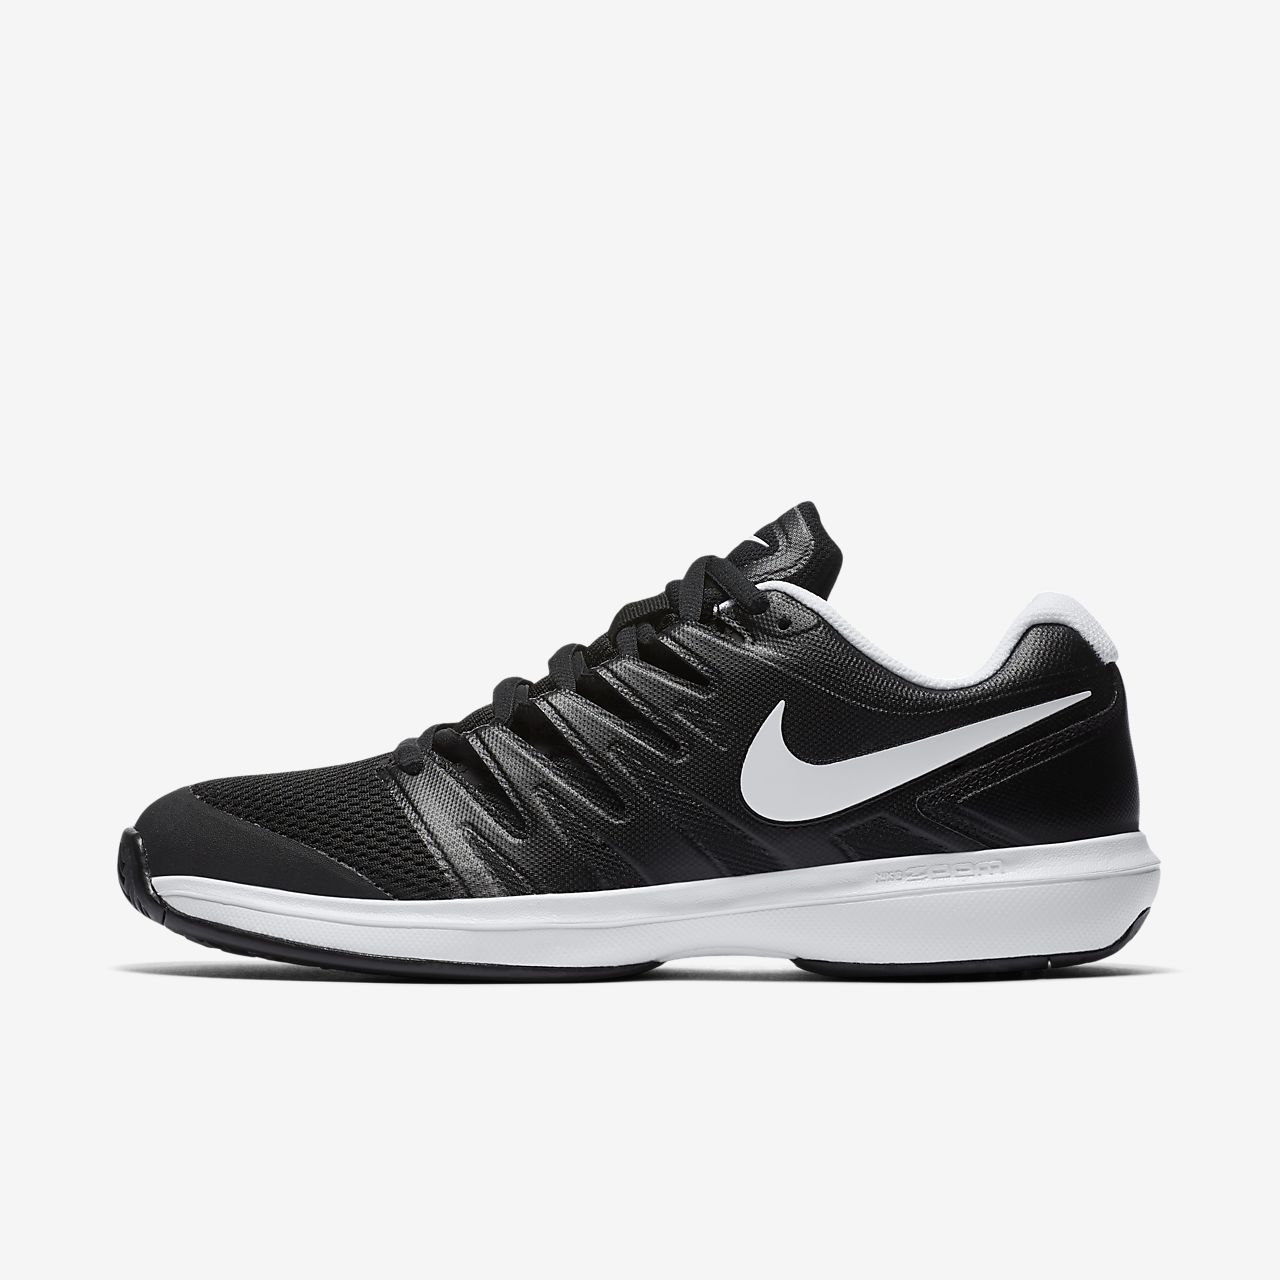 wholesale dealer be488 3c4c1 ... buy calzado de tenis para cancha dura para hombre nikecourt air zoom  prestige 043db 4dd24 ...